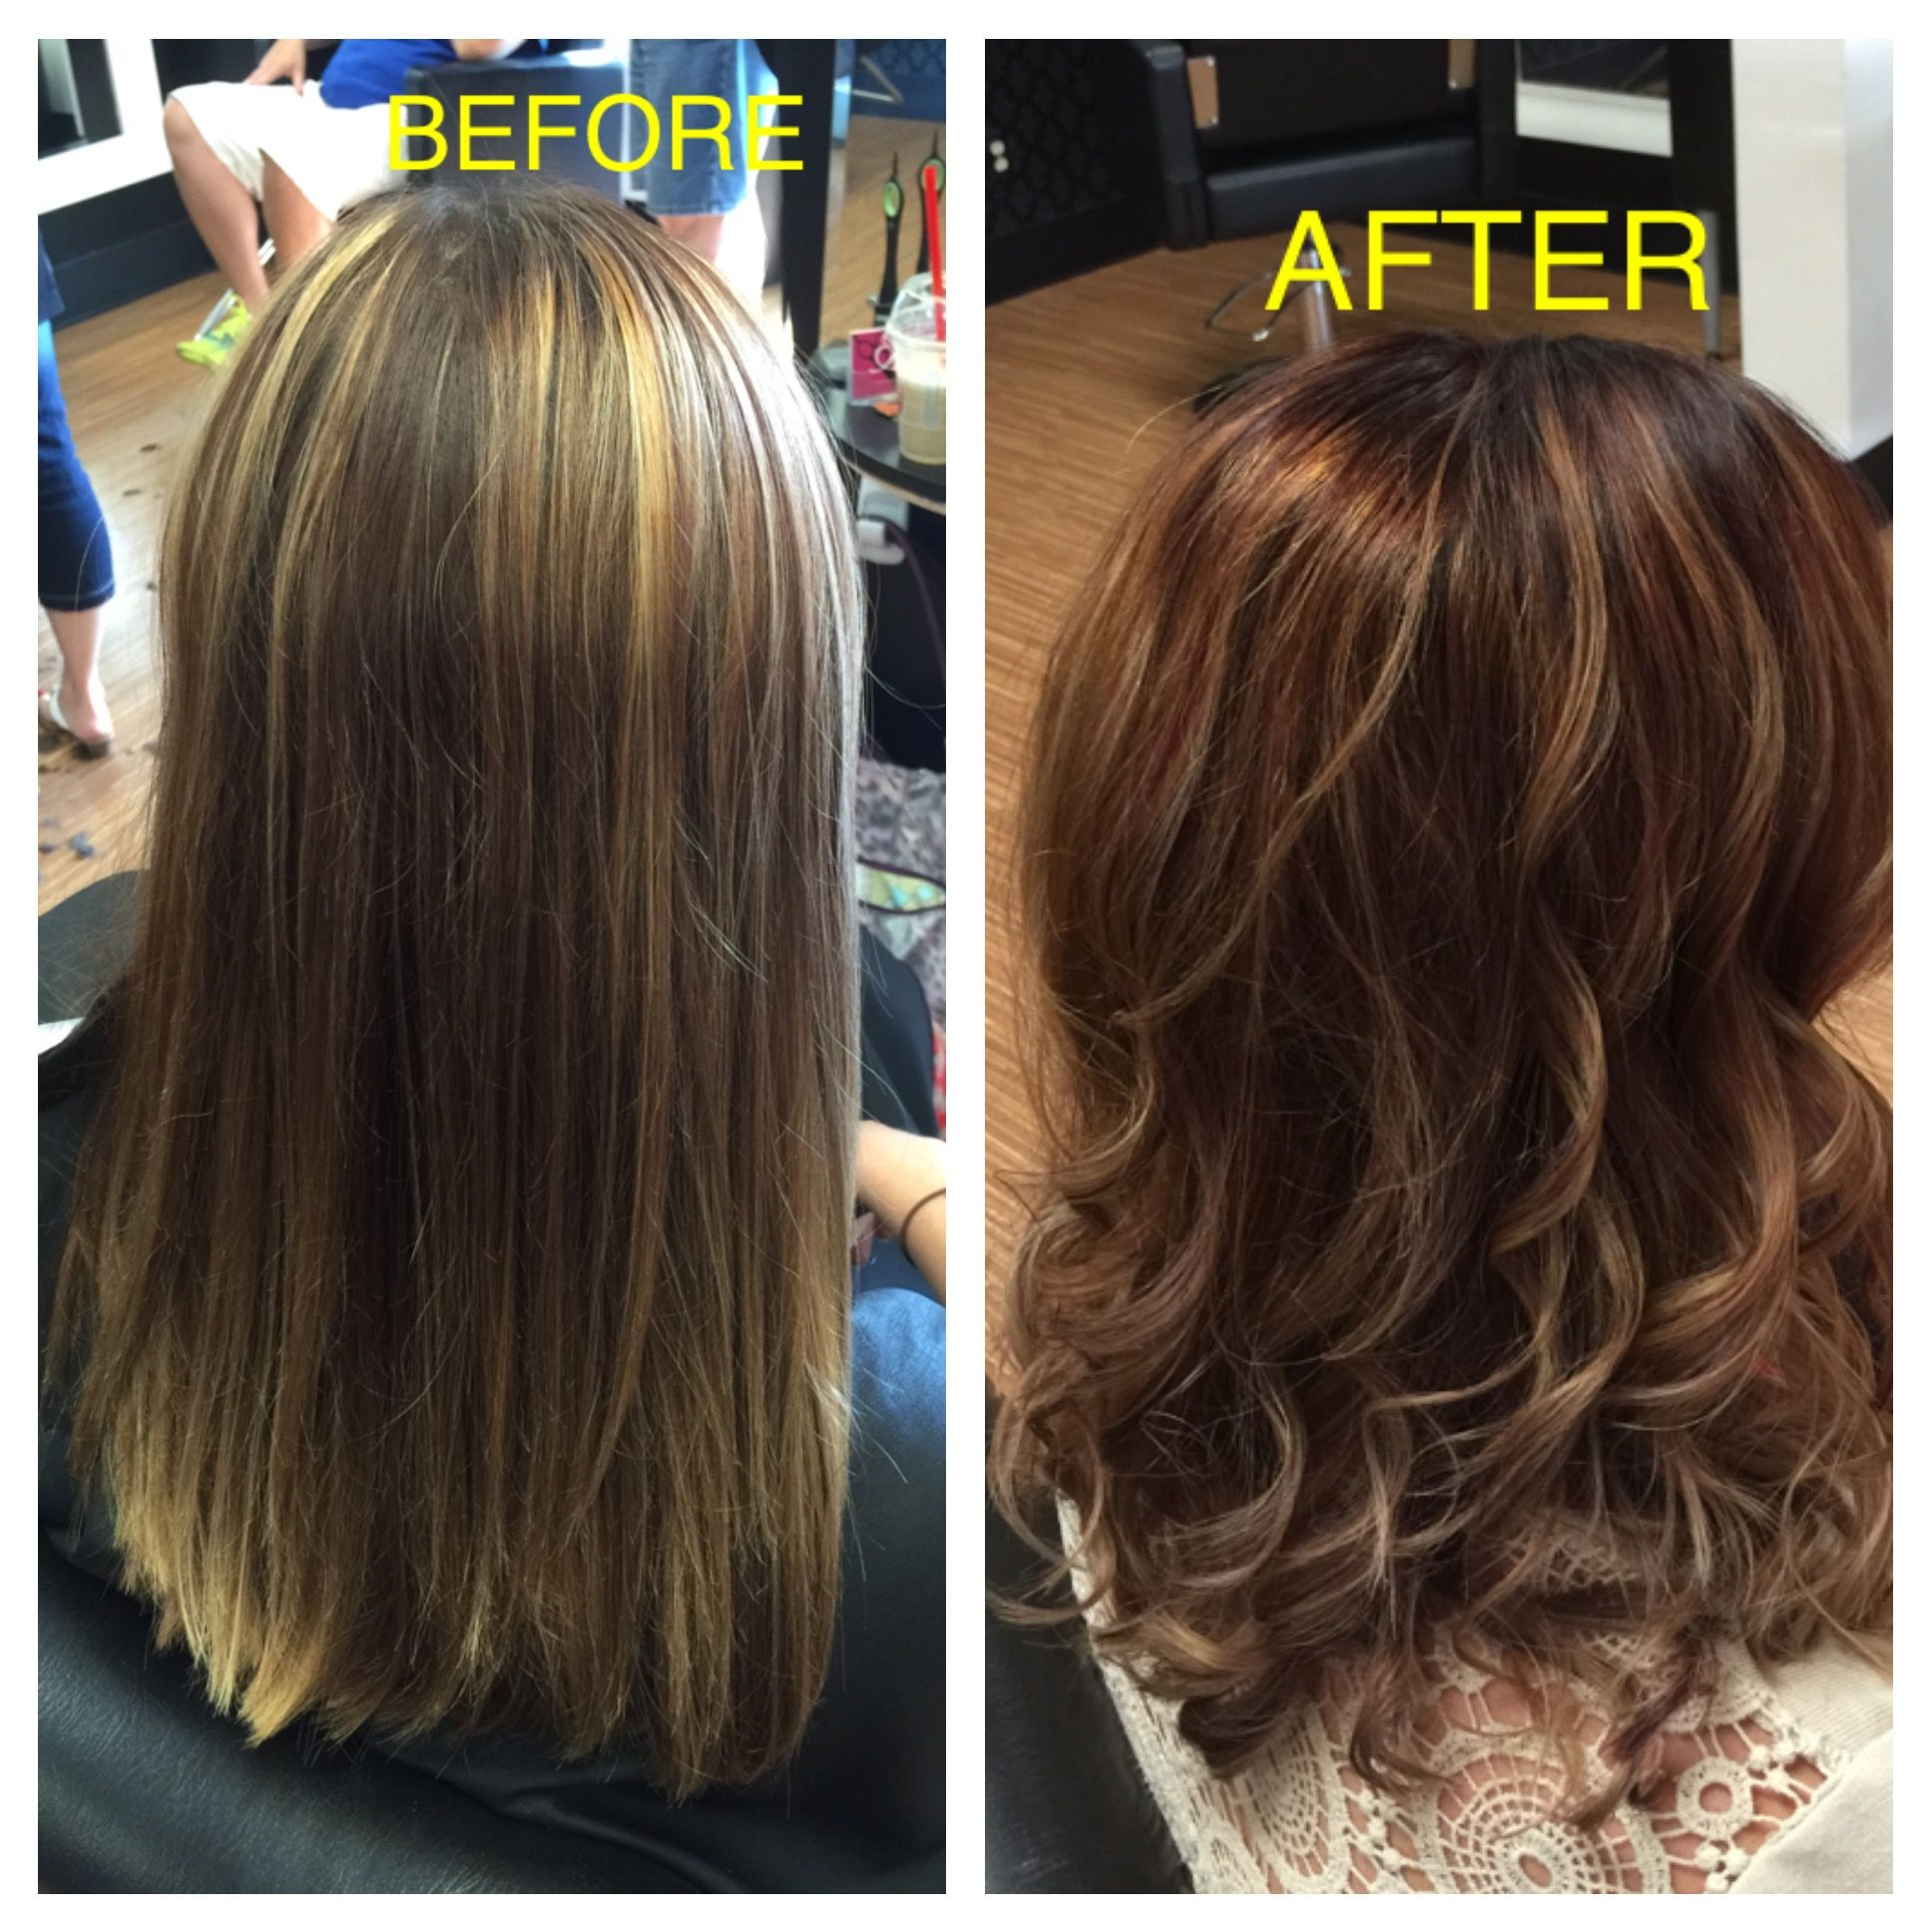 Before and after using olaplex and balayage by hillary collins